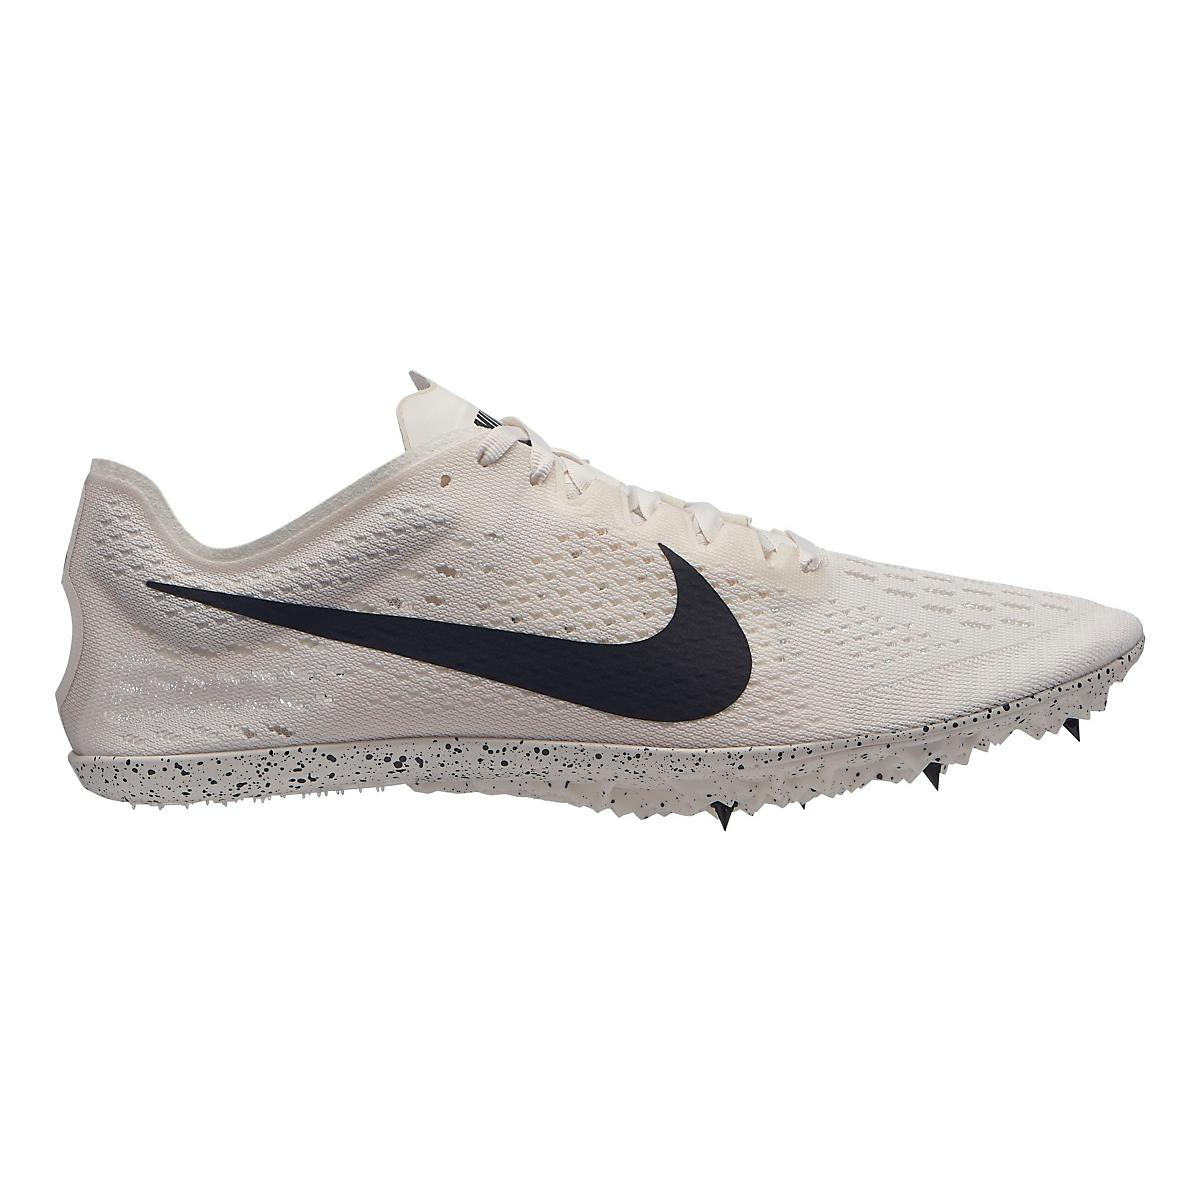 cruzar Preguntarse Alivio  Nike Zoom Victory 3 Track and Field Shoe at Road Runner Sports